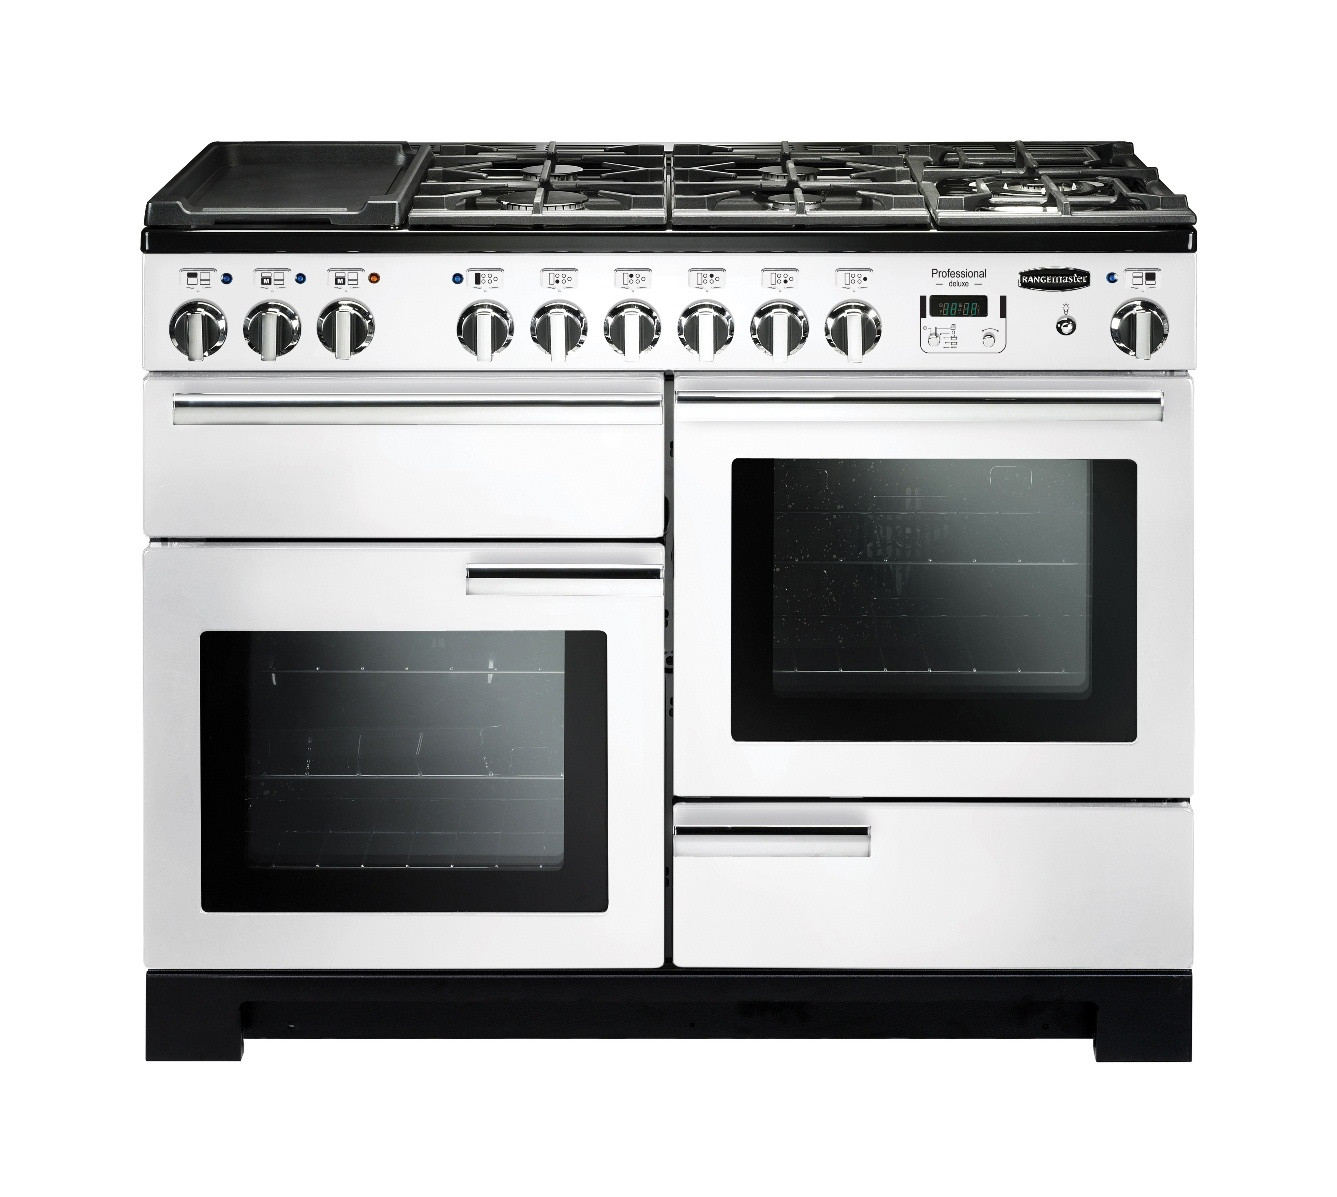 Rangemaster Professional Deluxe 110 Dual Fuel White Range Cooker PDL110DFFWH/C 98940